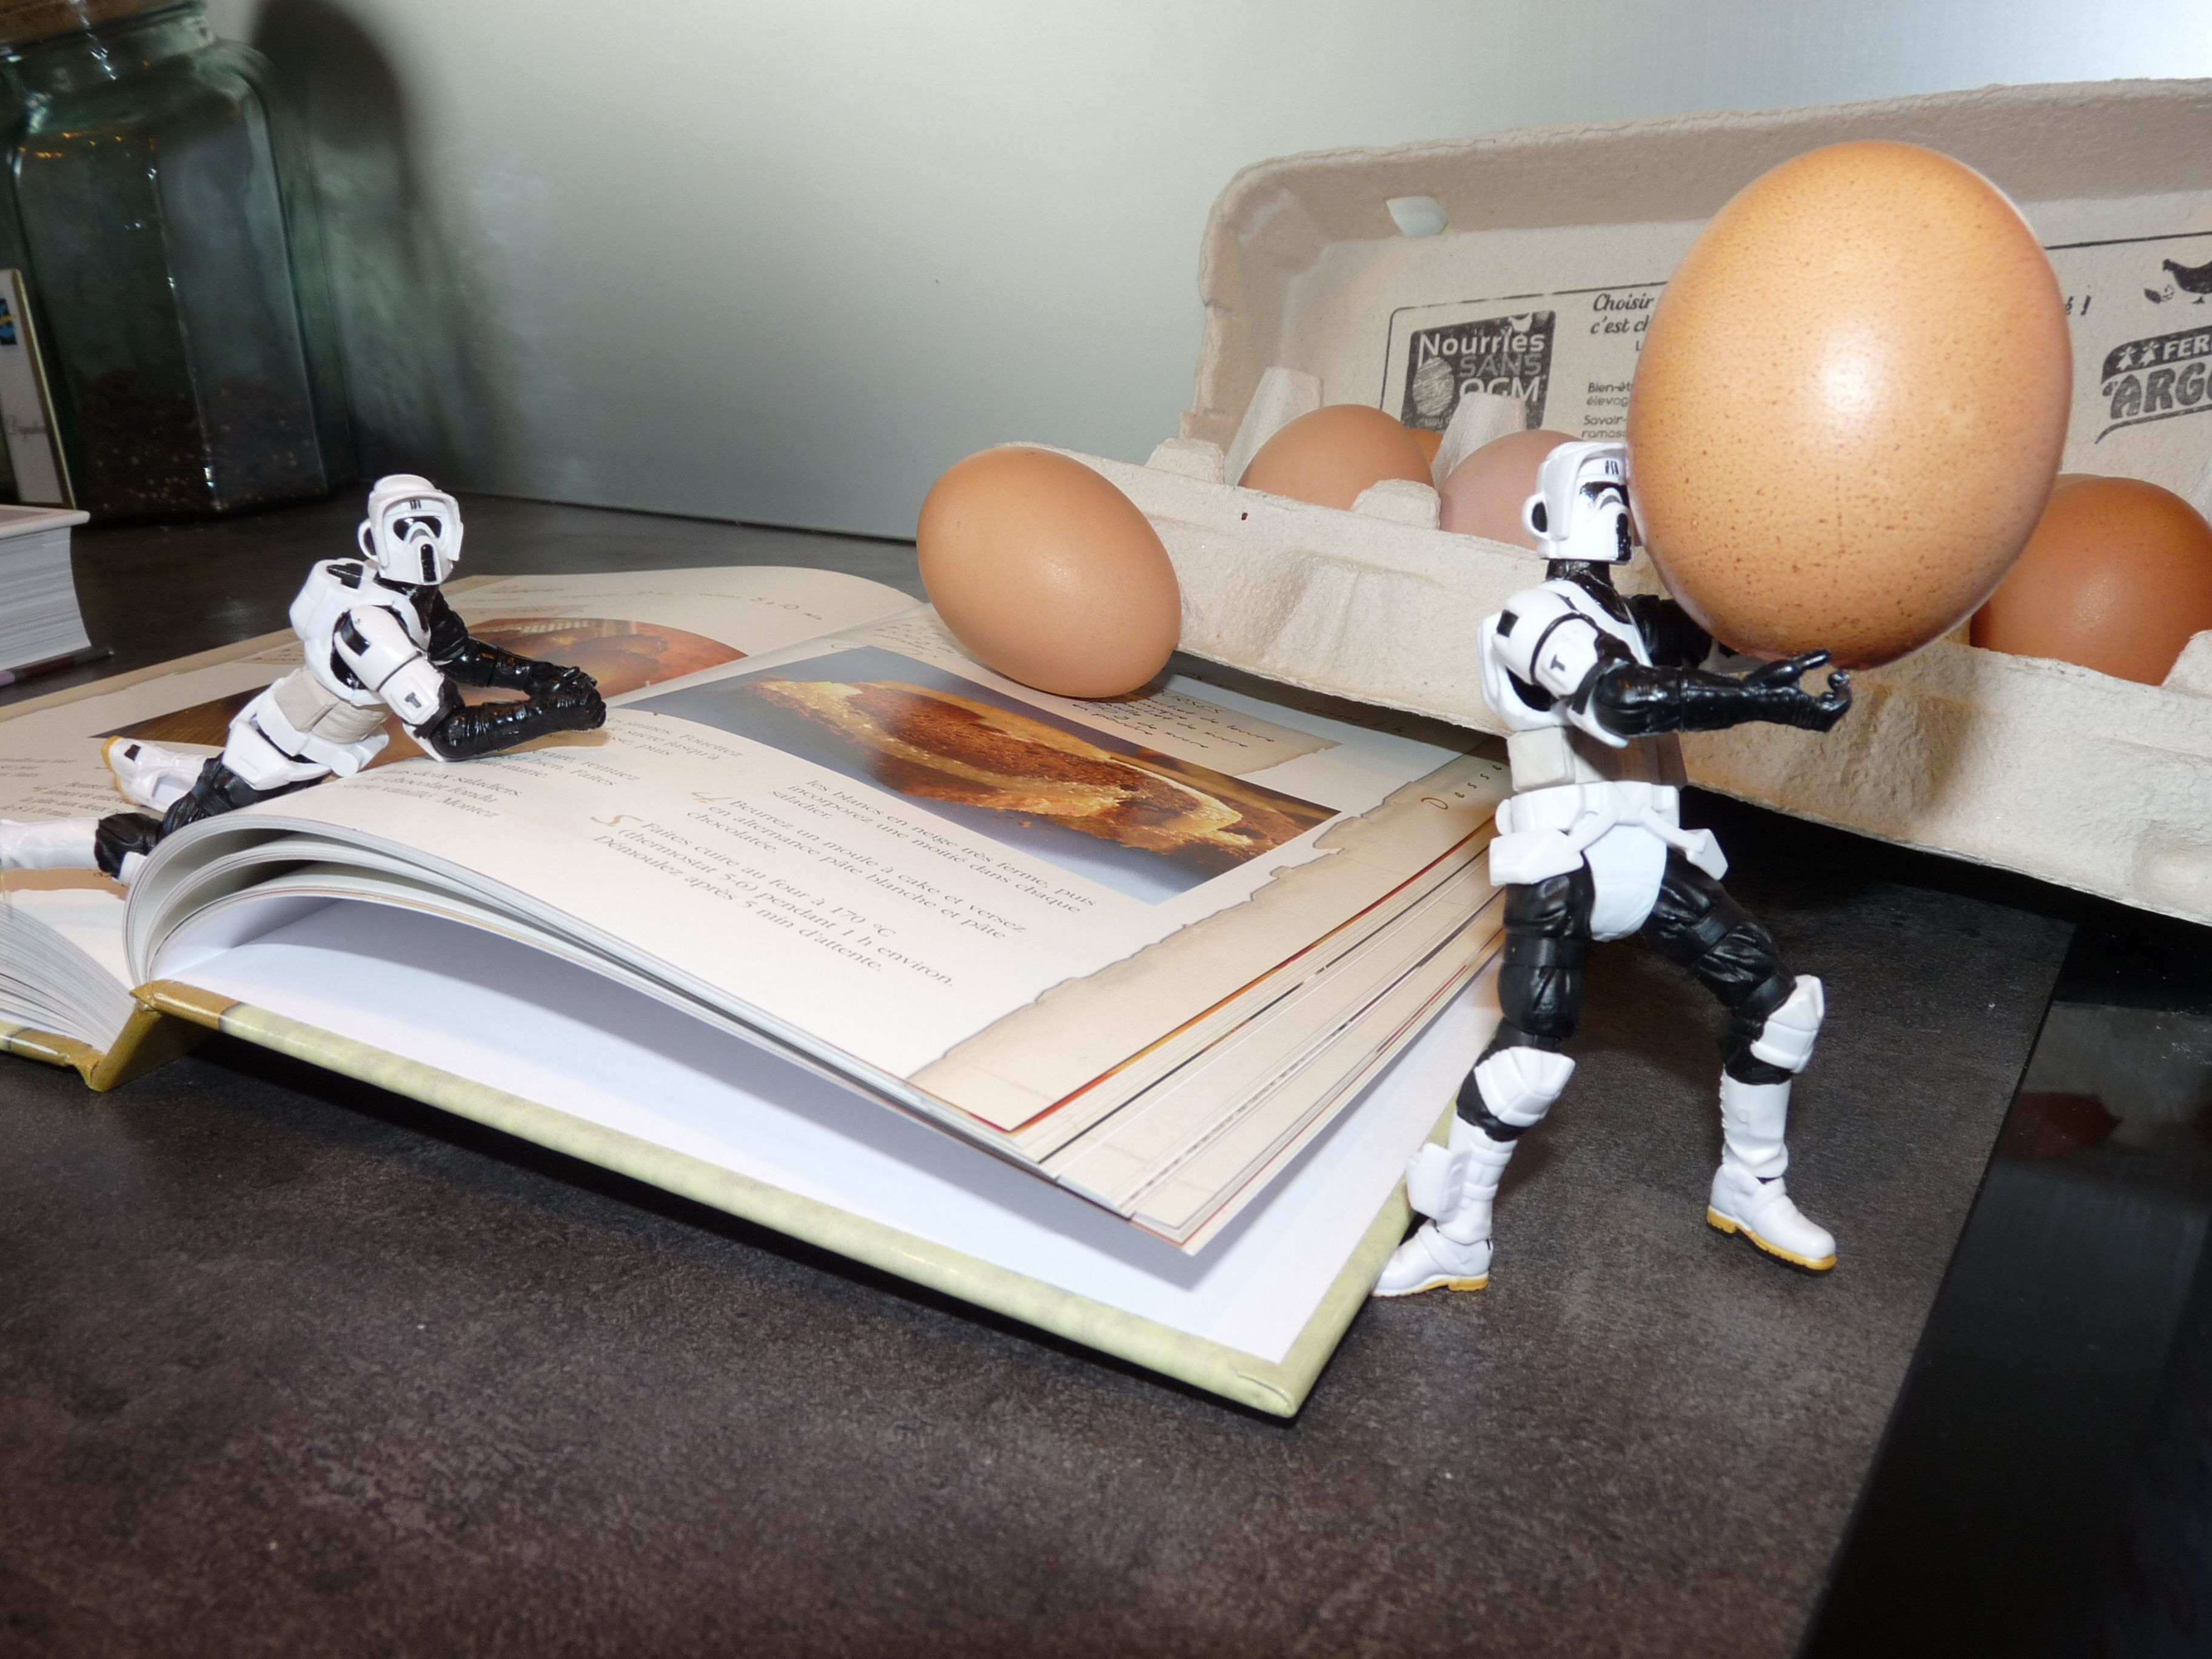 Funny Star Wars in the kitchen